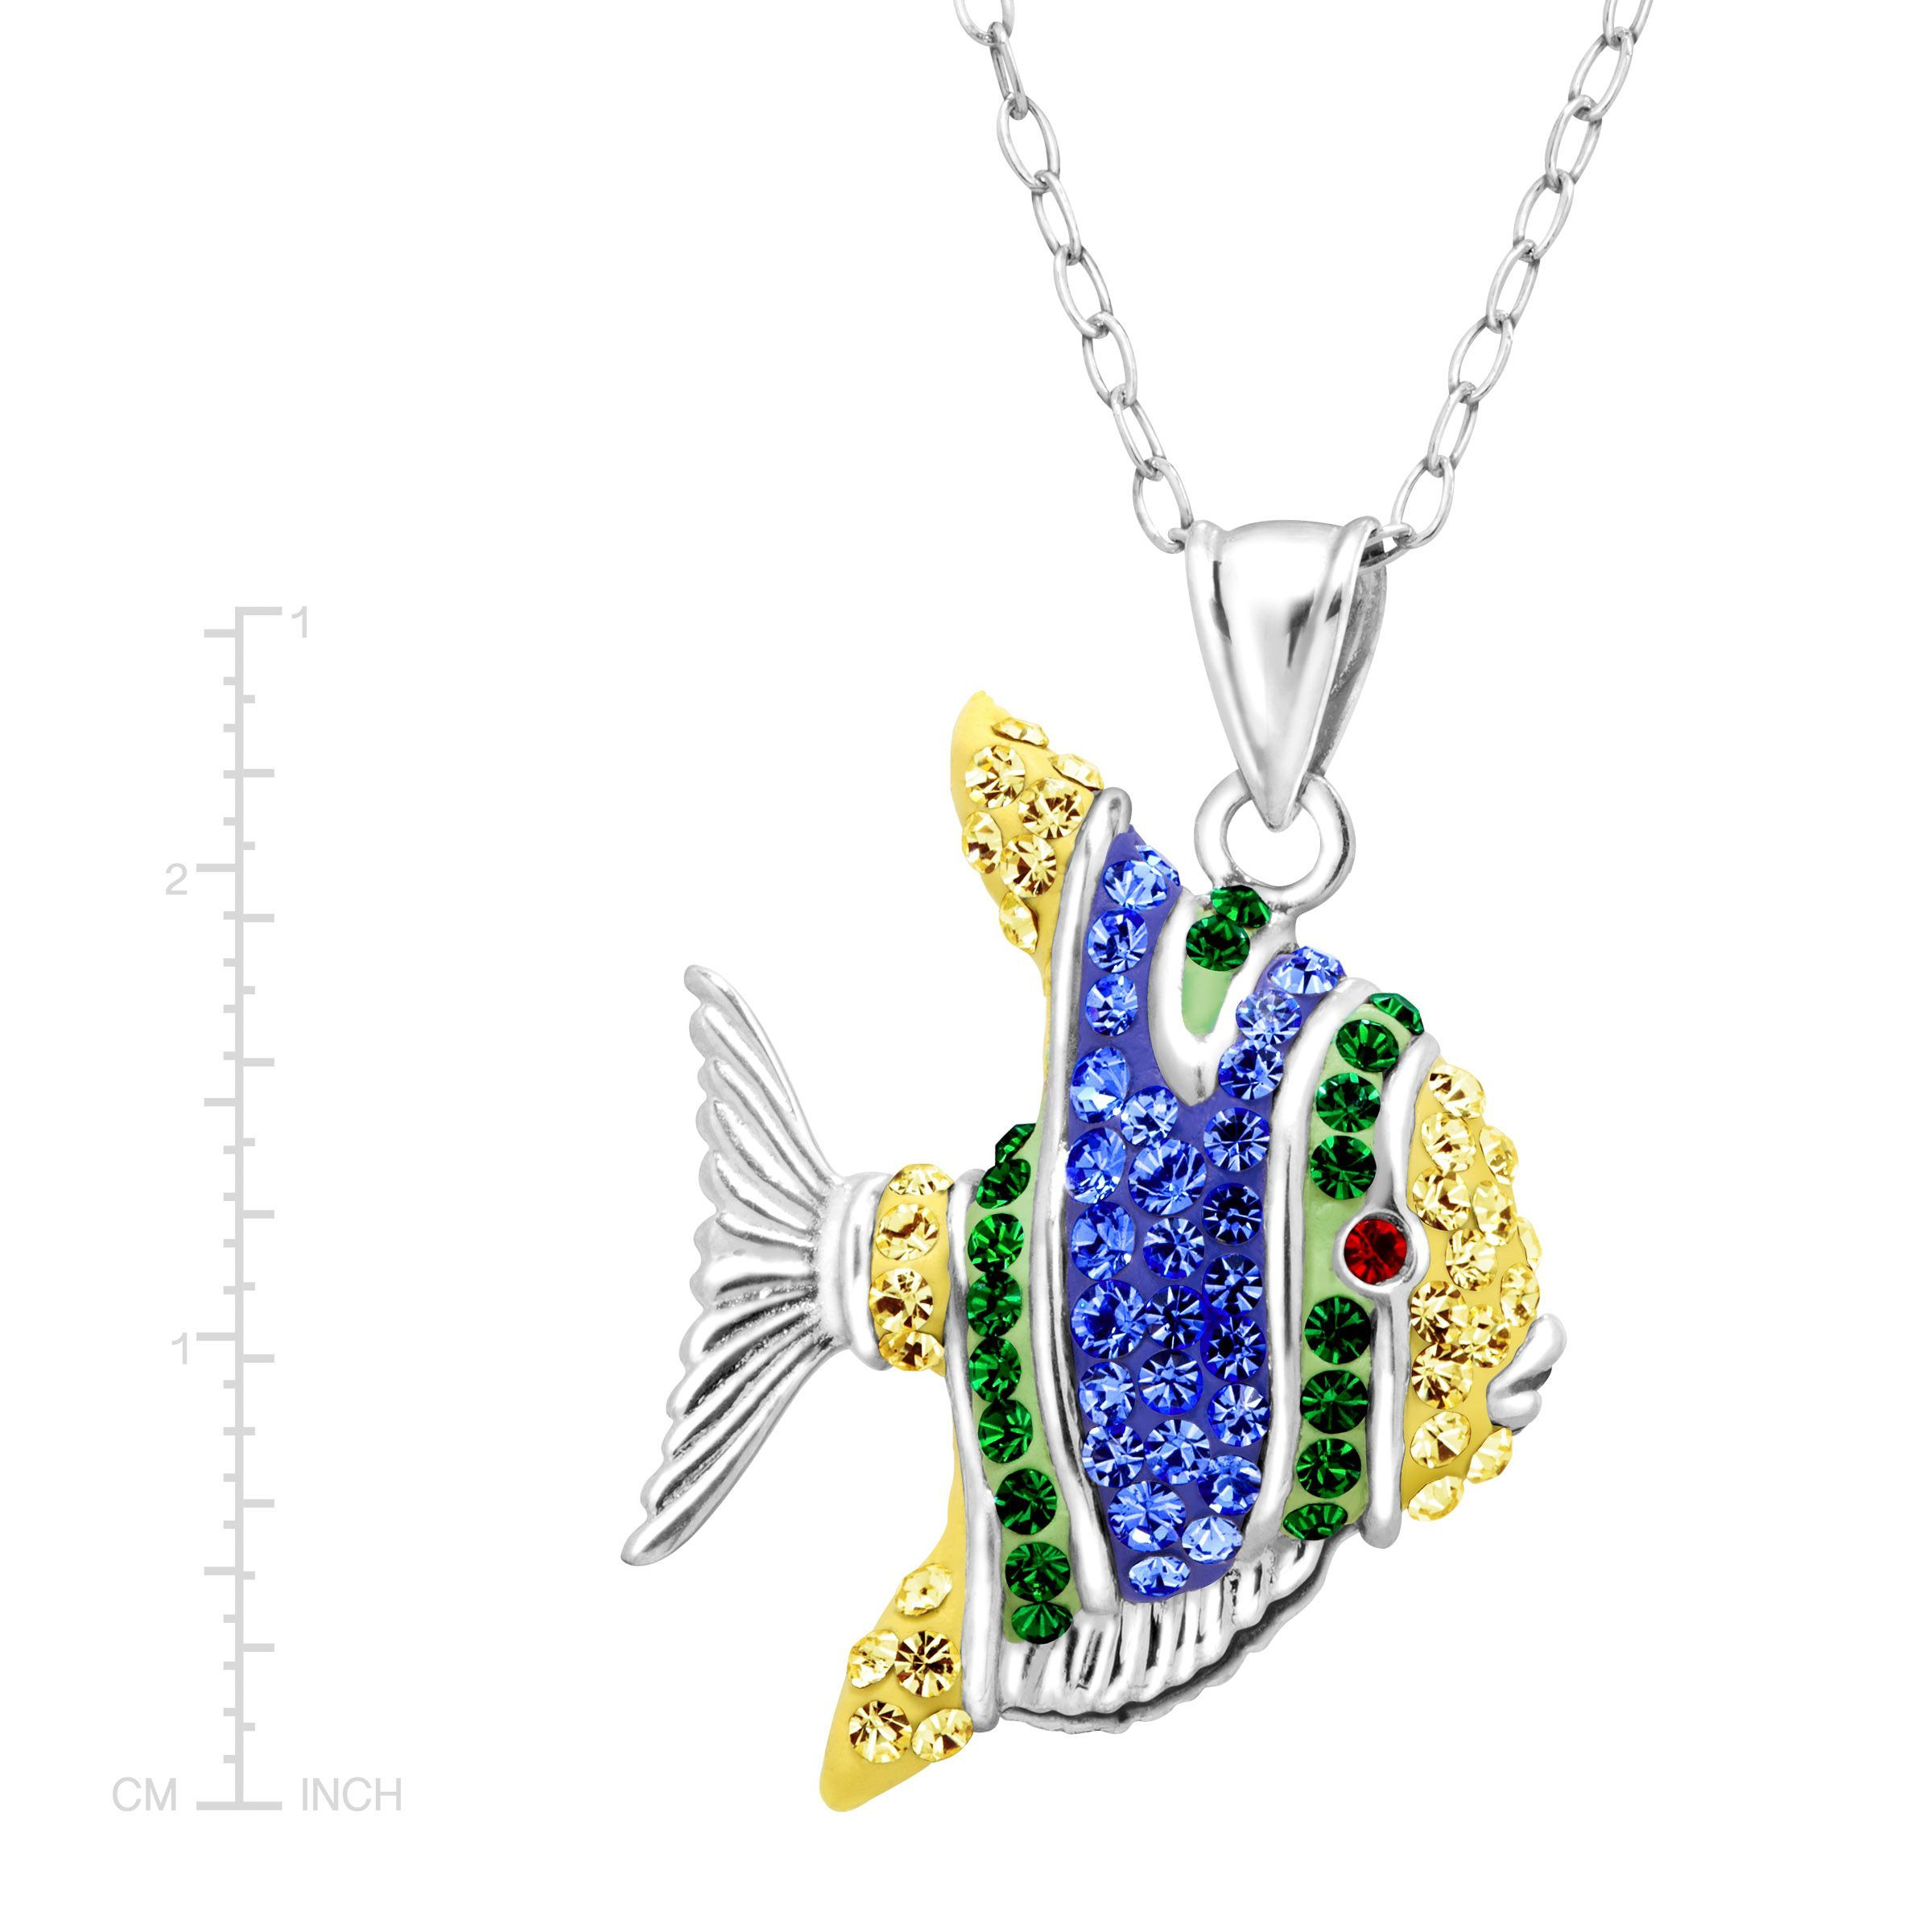 b0e3af7867033 Details about Crystaluxe Tropical Fish Pendant with Swarovski Crystals in  Sterling Silver